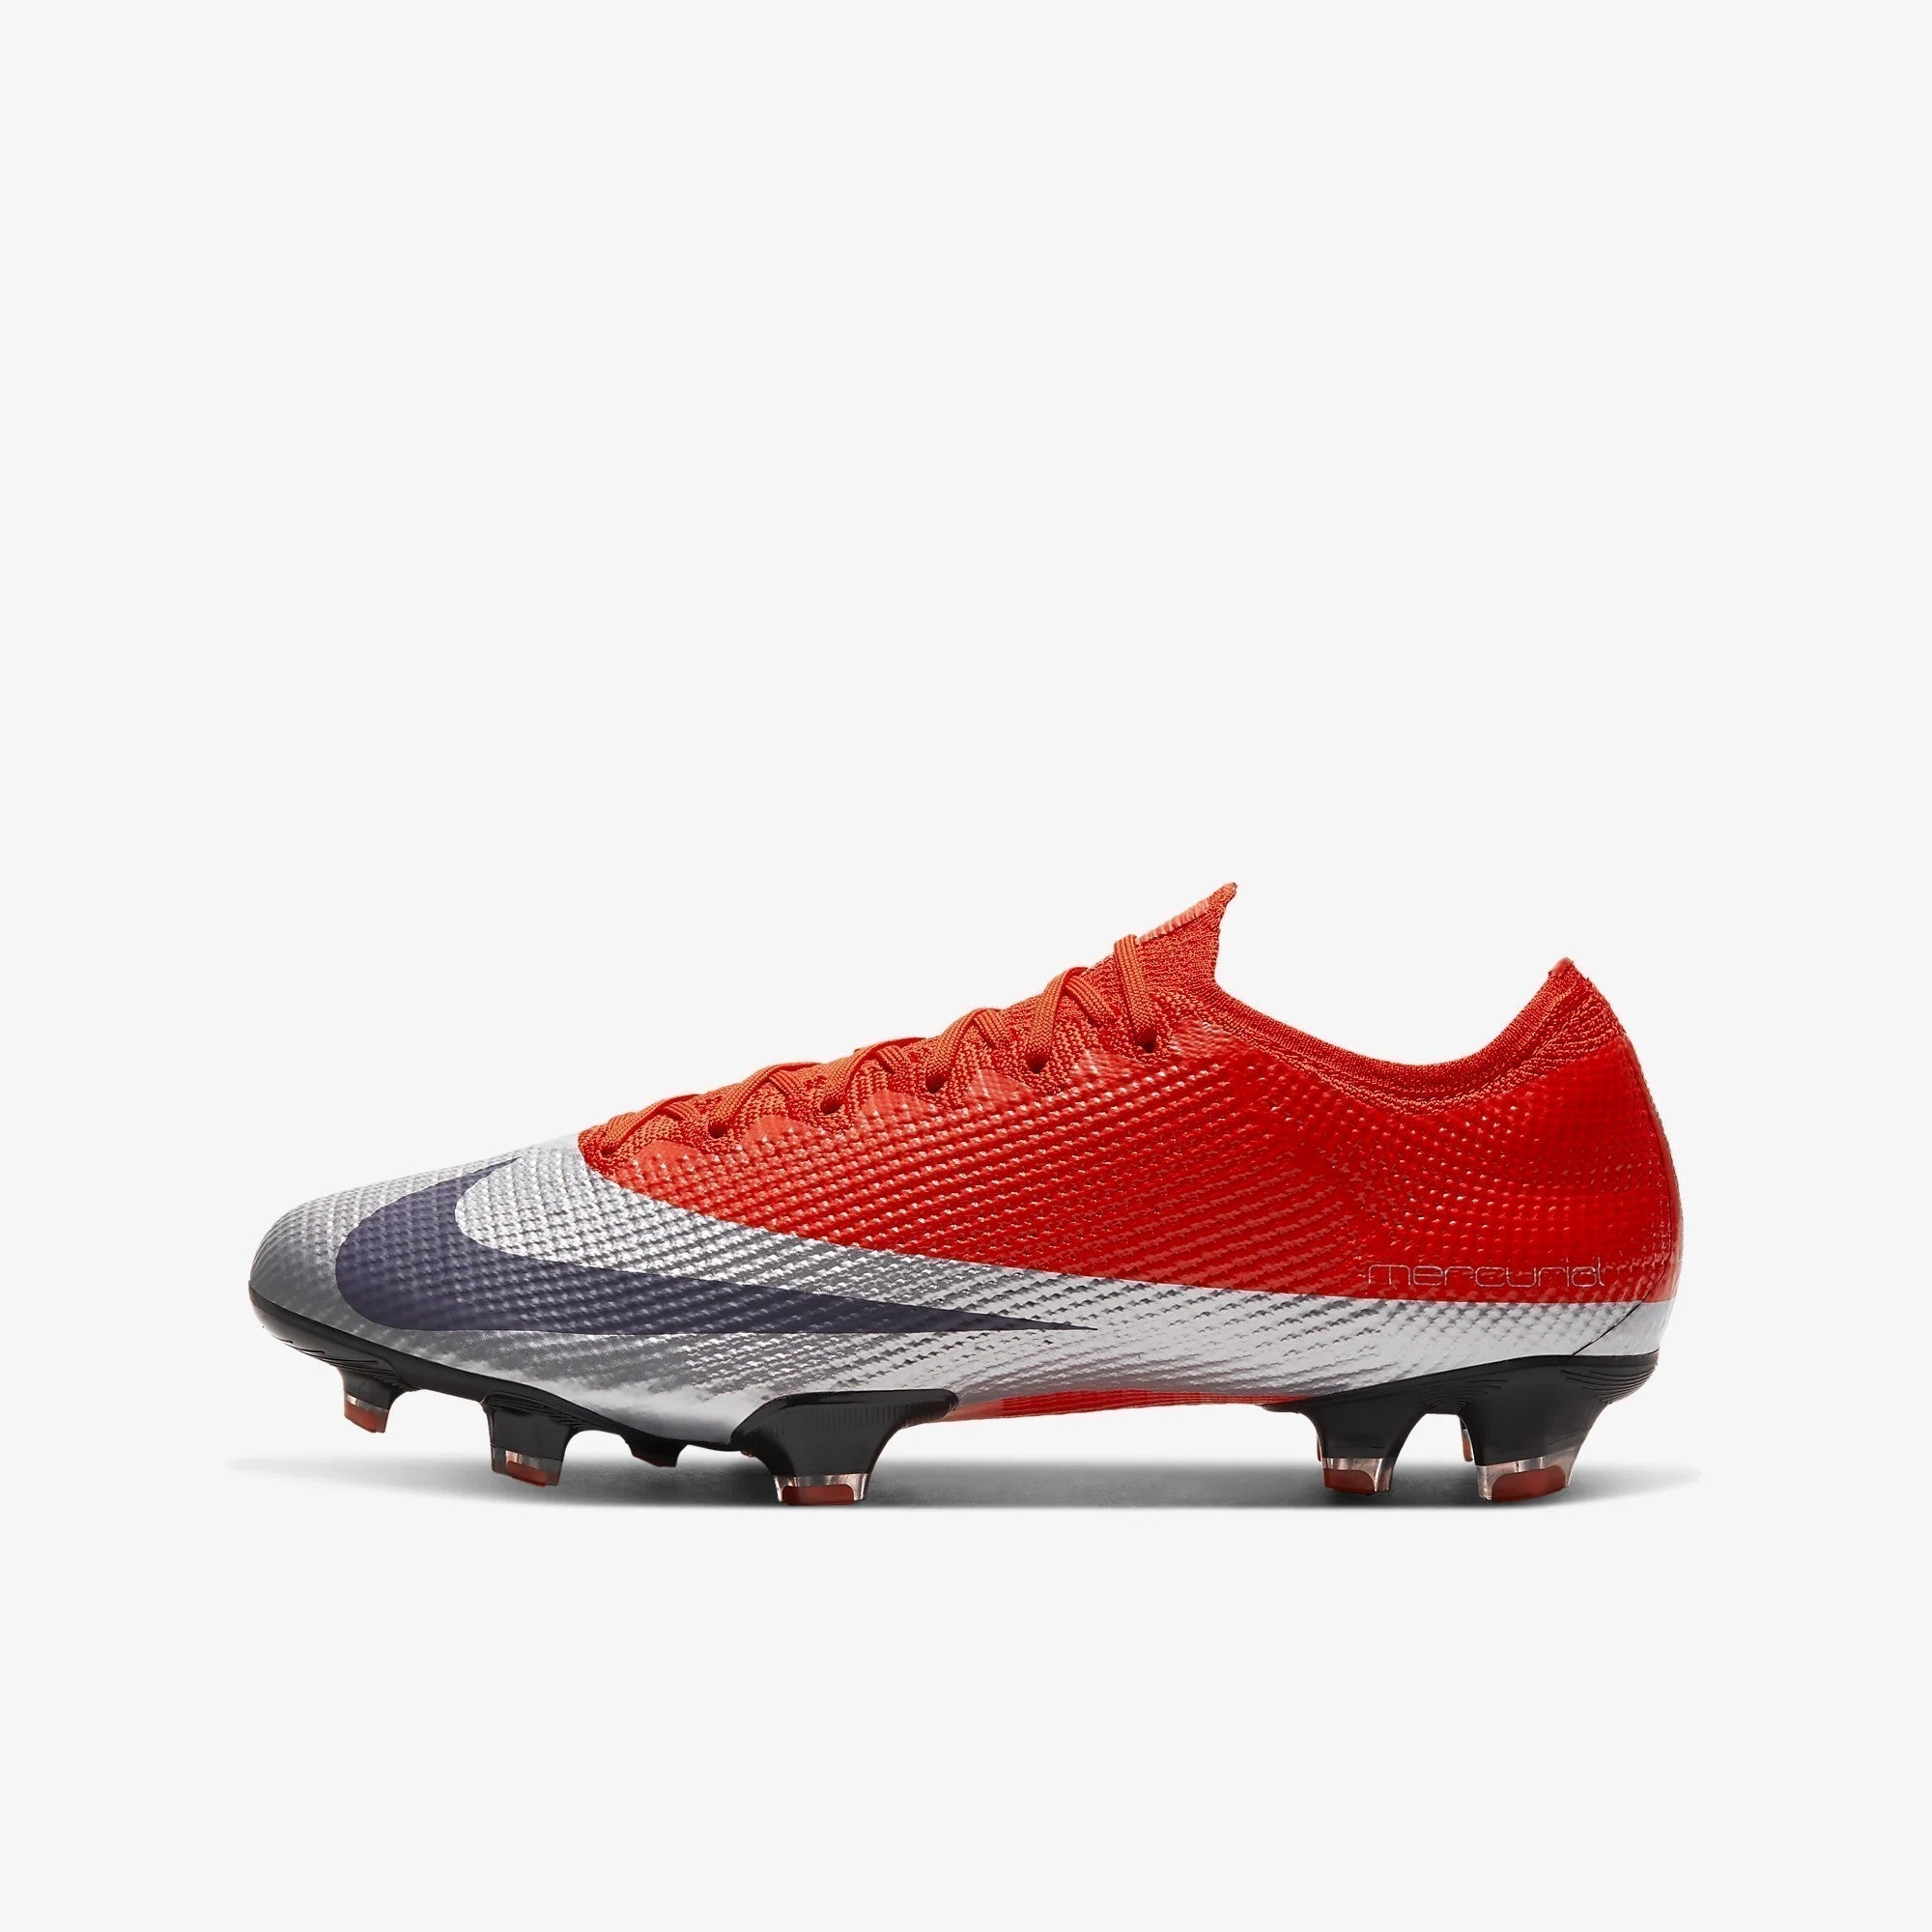 Men's Mercurial Vapor 13 Elite FG Max Orange/Metallic Silver